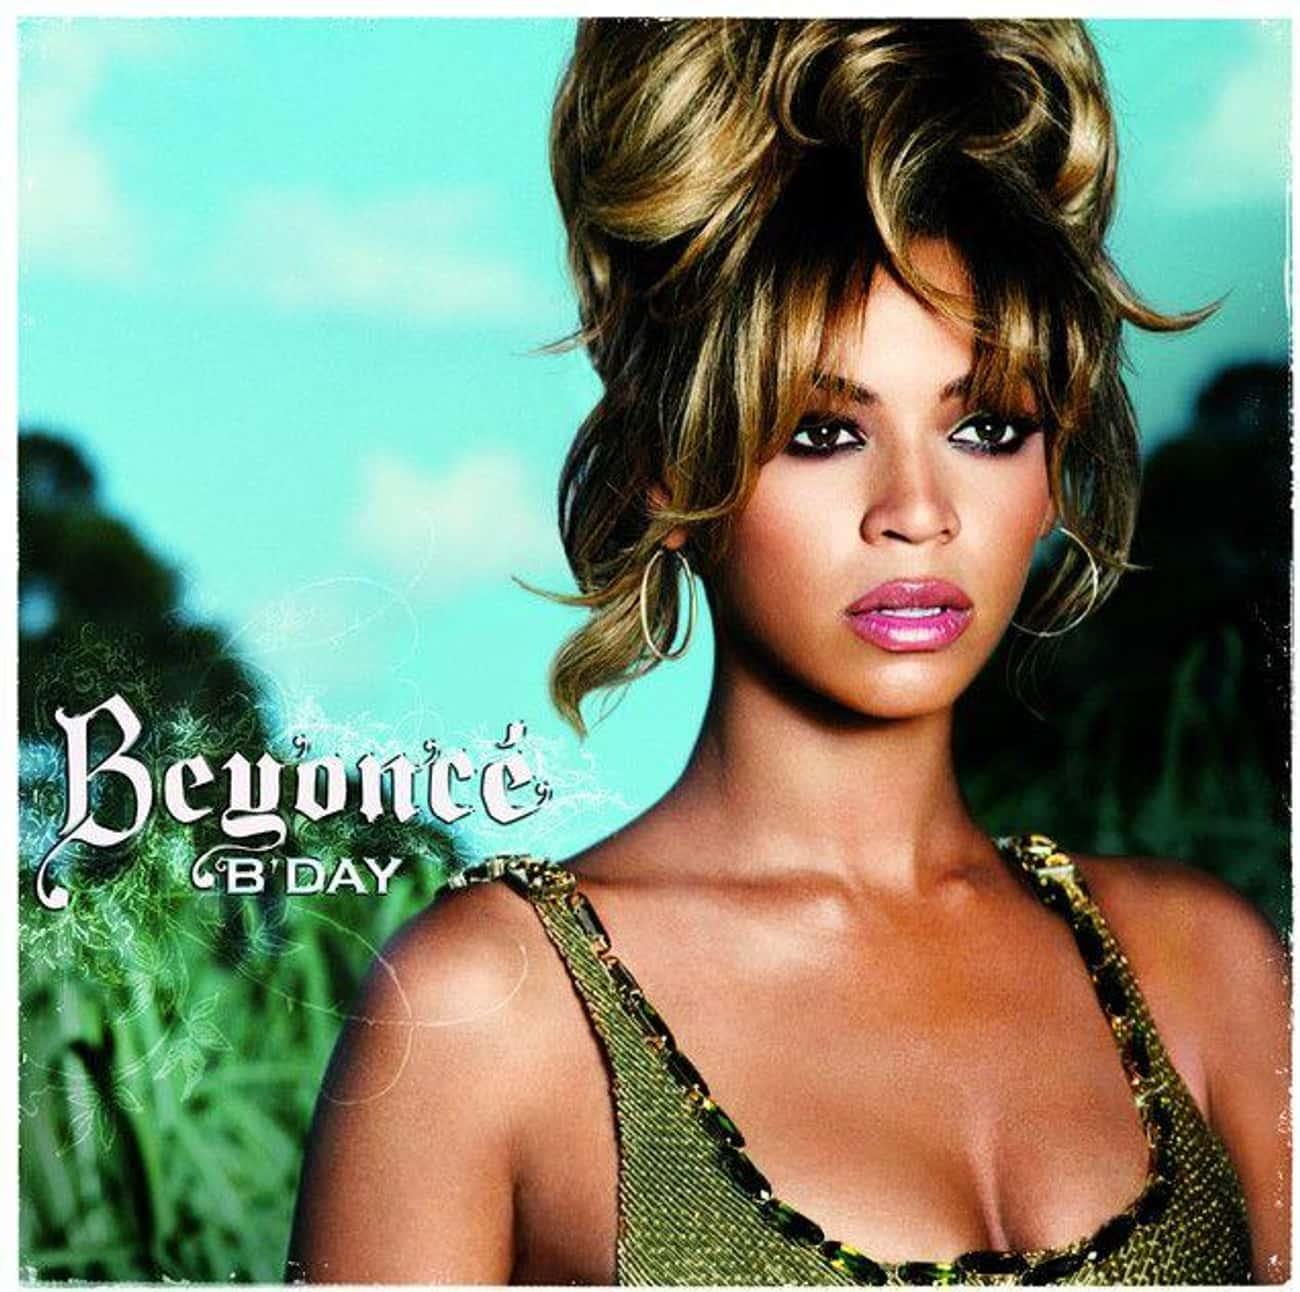 B'Day is listed (or ranked) 3 on the list The Best Beyonce Albums, Ranked